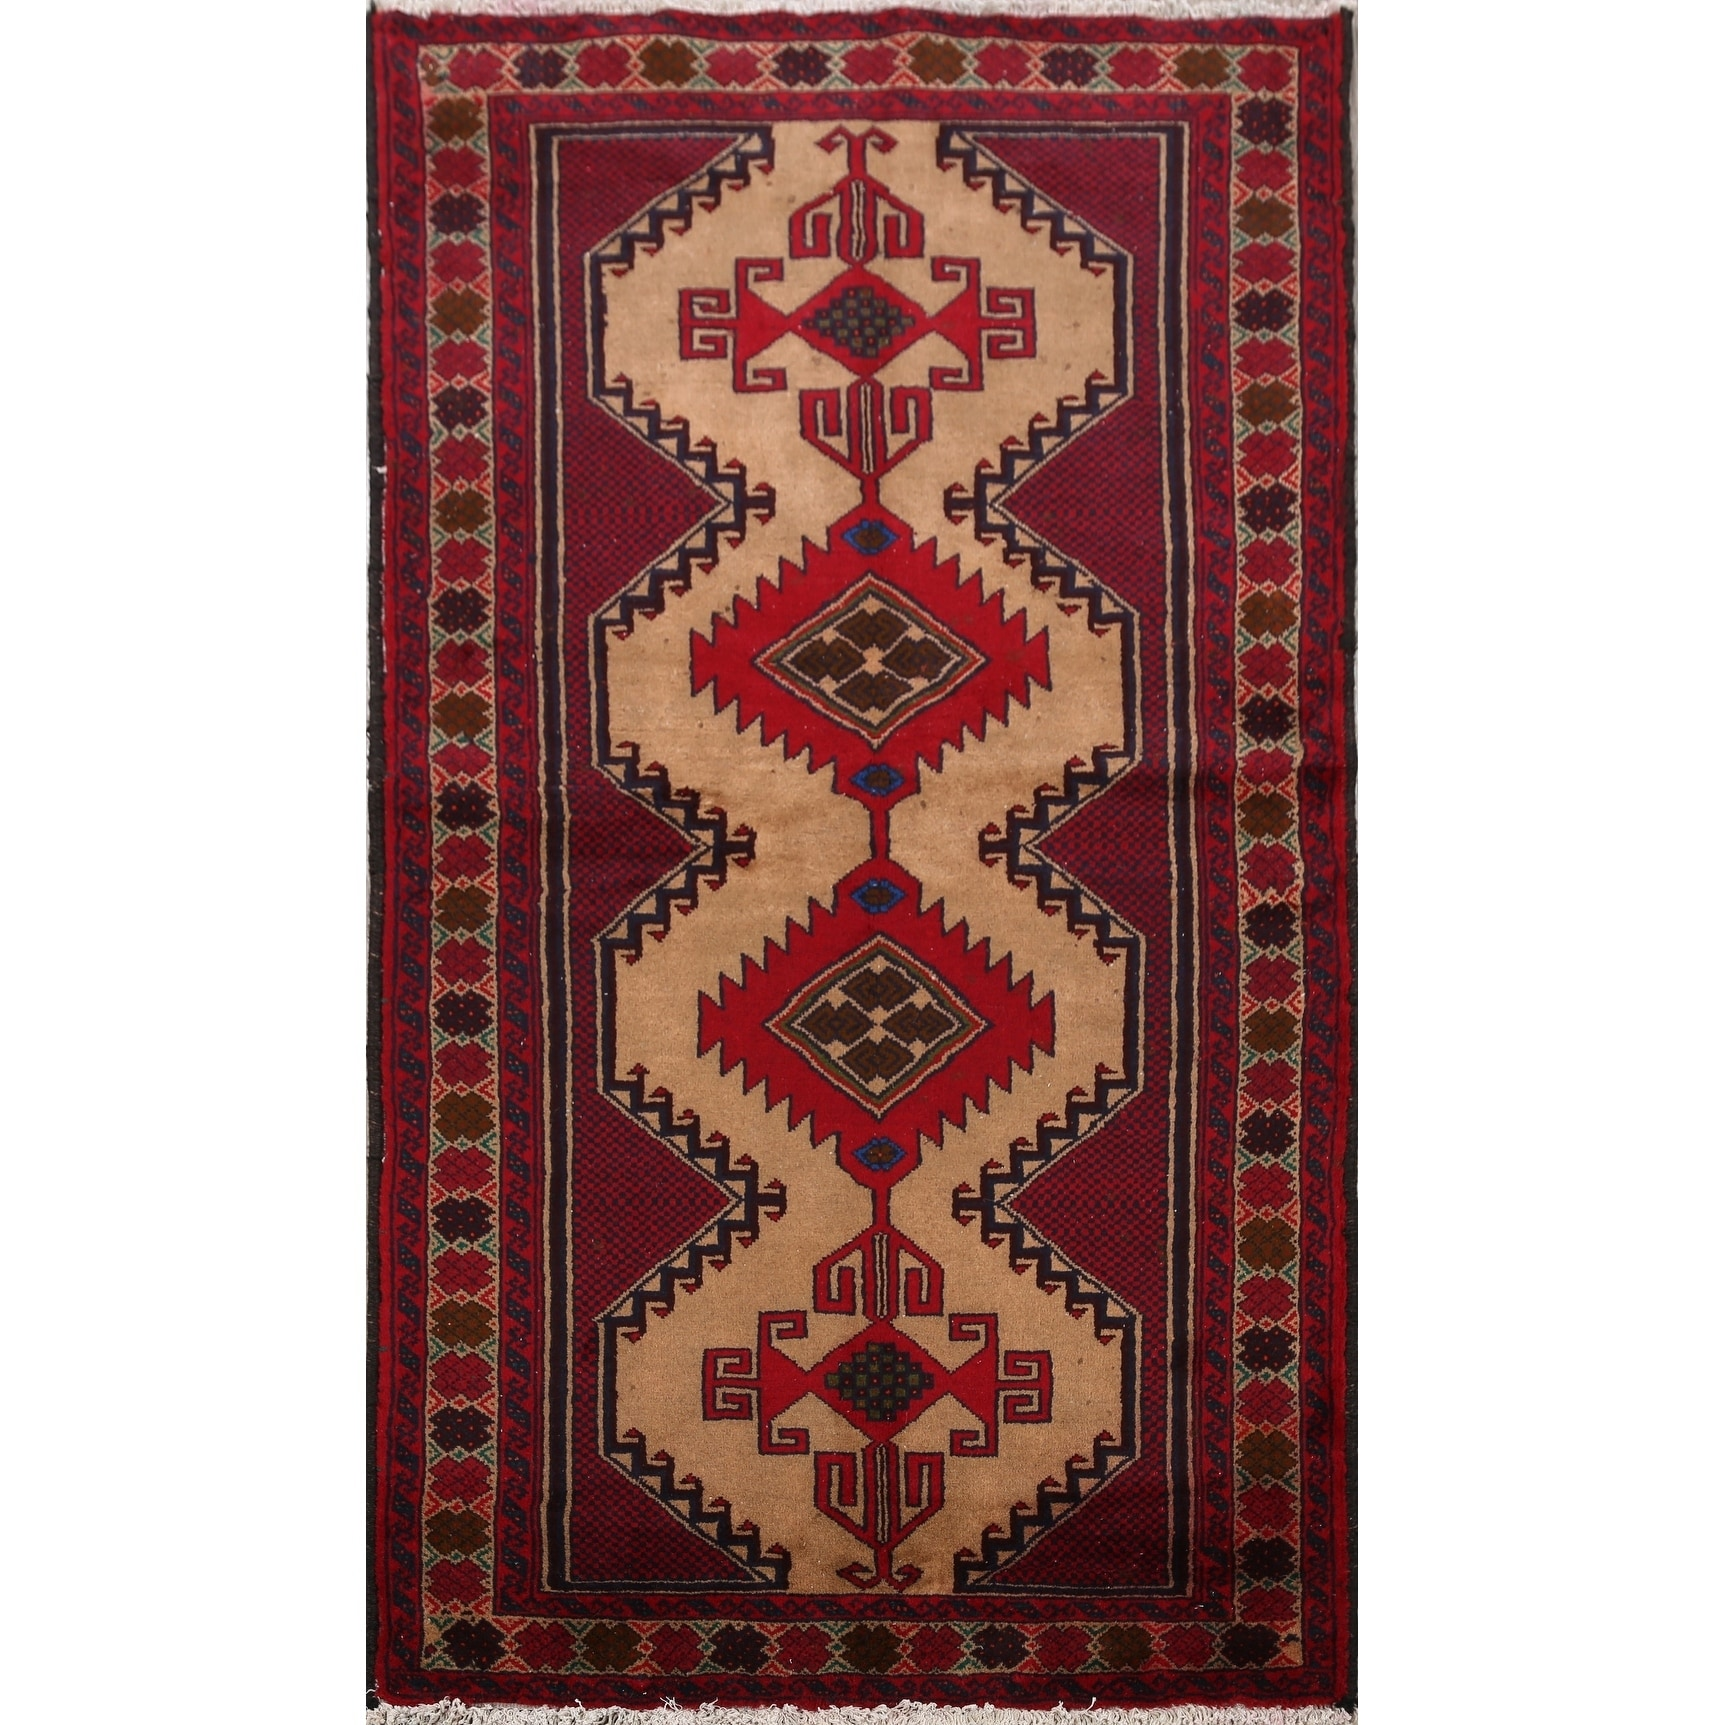 Geometric Balouch Oriental Area Rug Hand Knotted Brown Carpet 3 6 X 6 10 On Sale Overstock 30985554